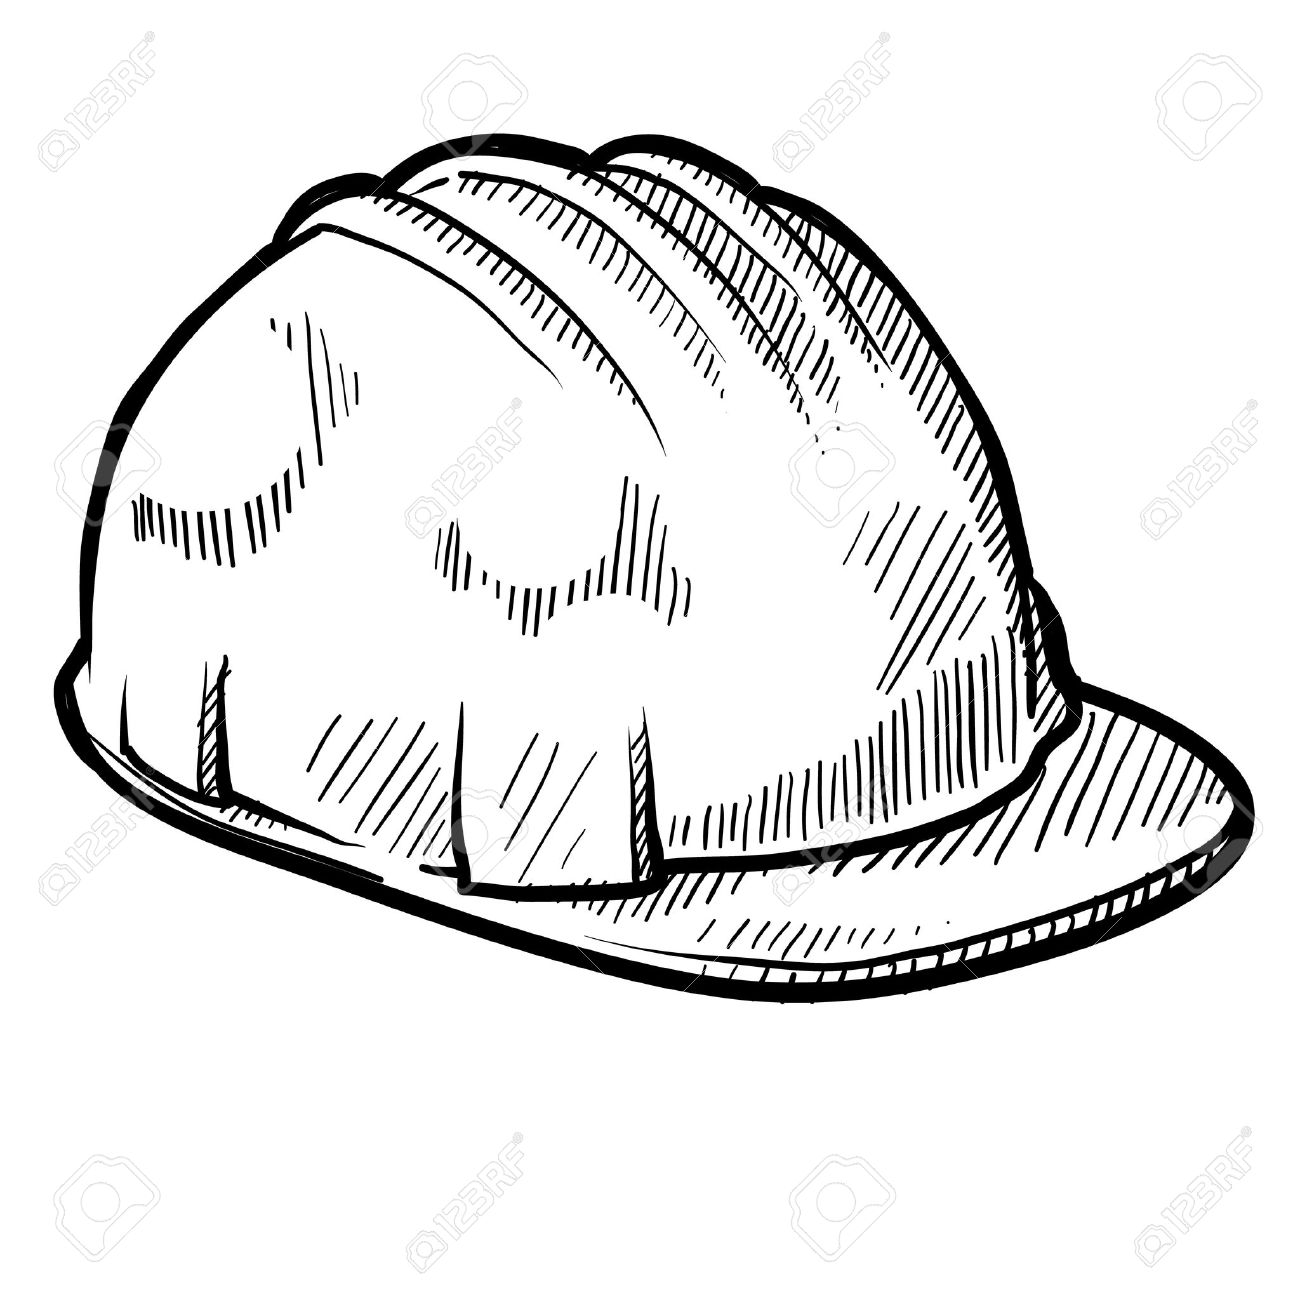 Doodle Style Construction Worker Safety Hardhat In Vector Format Stock Photo